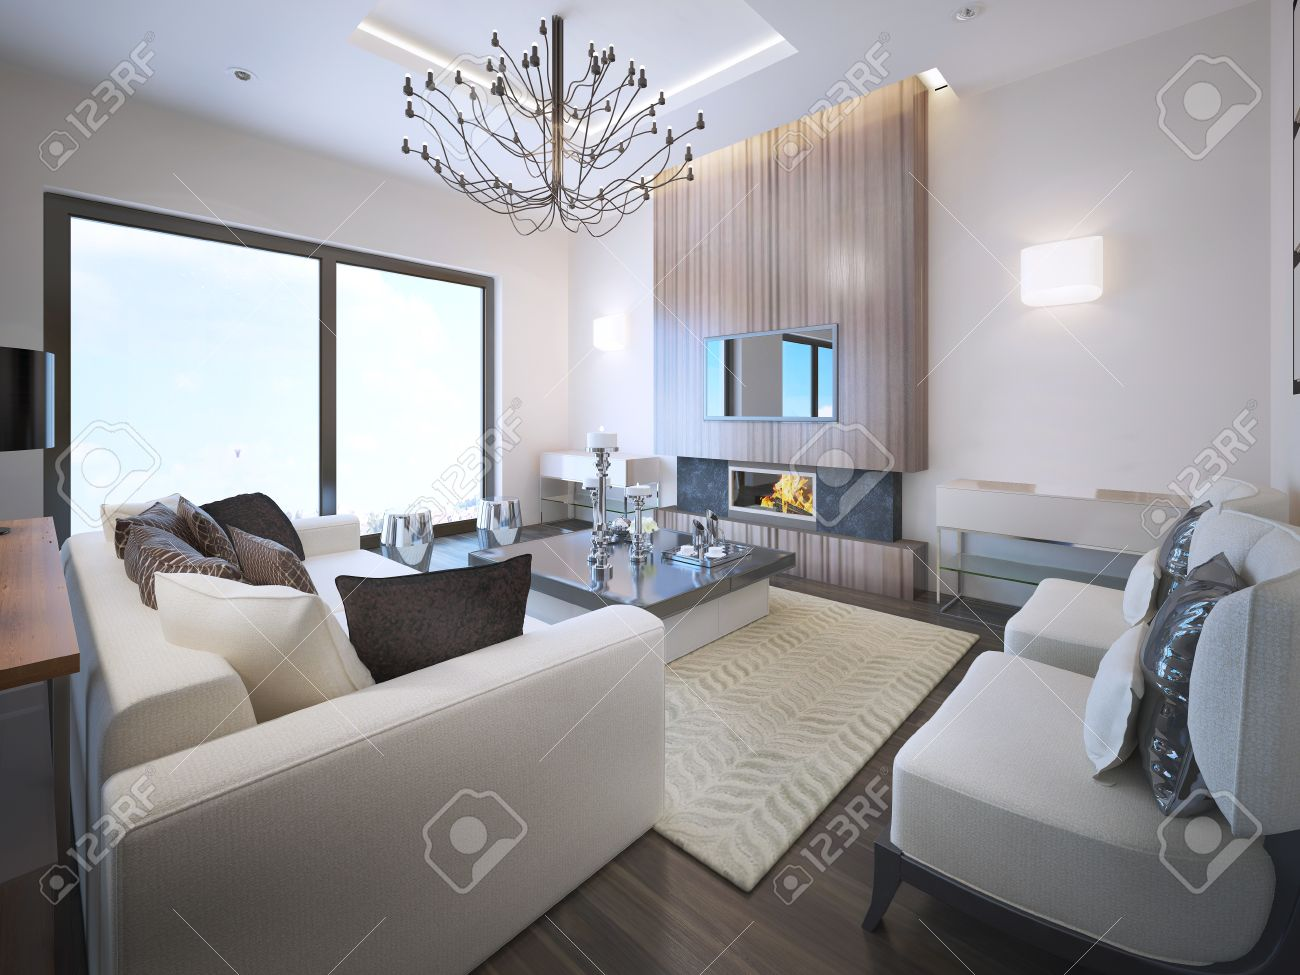 Avant Garde Living Room Trend High Ceiling With Neon Lights Fireplace Wood Frame